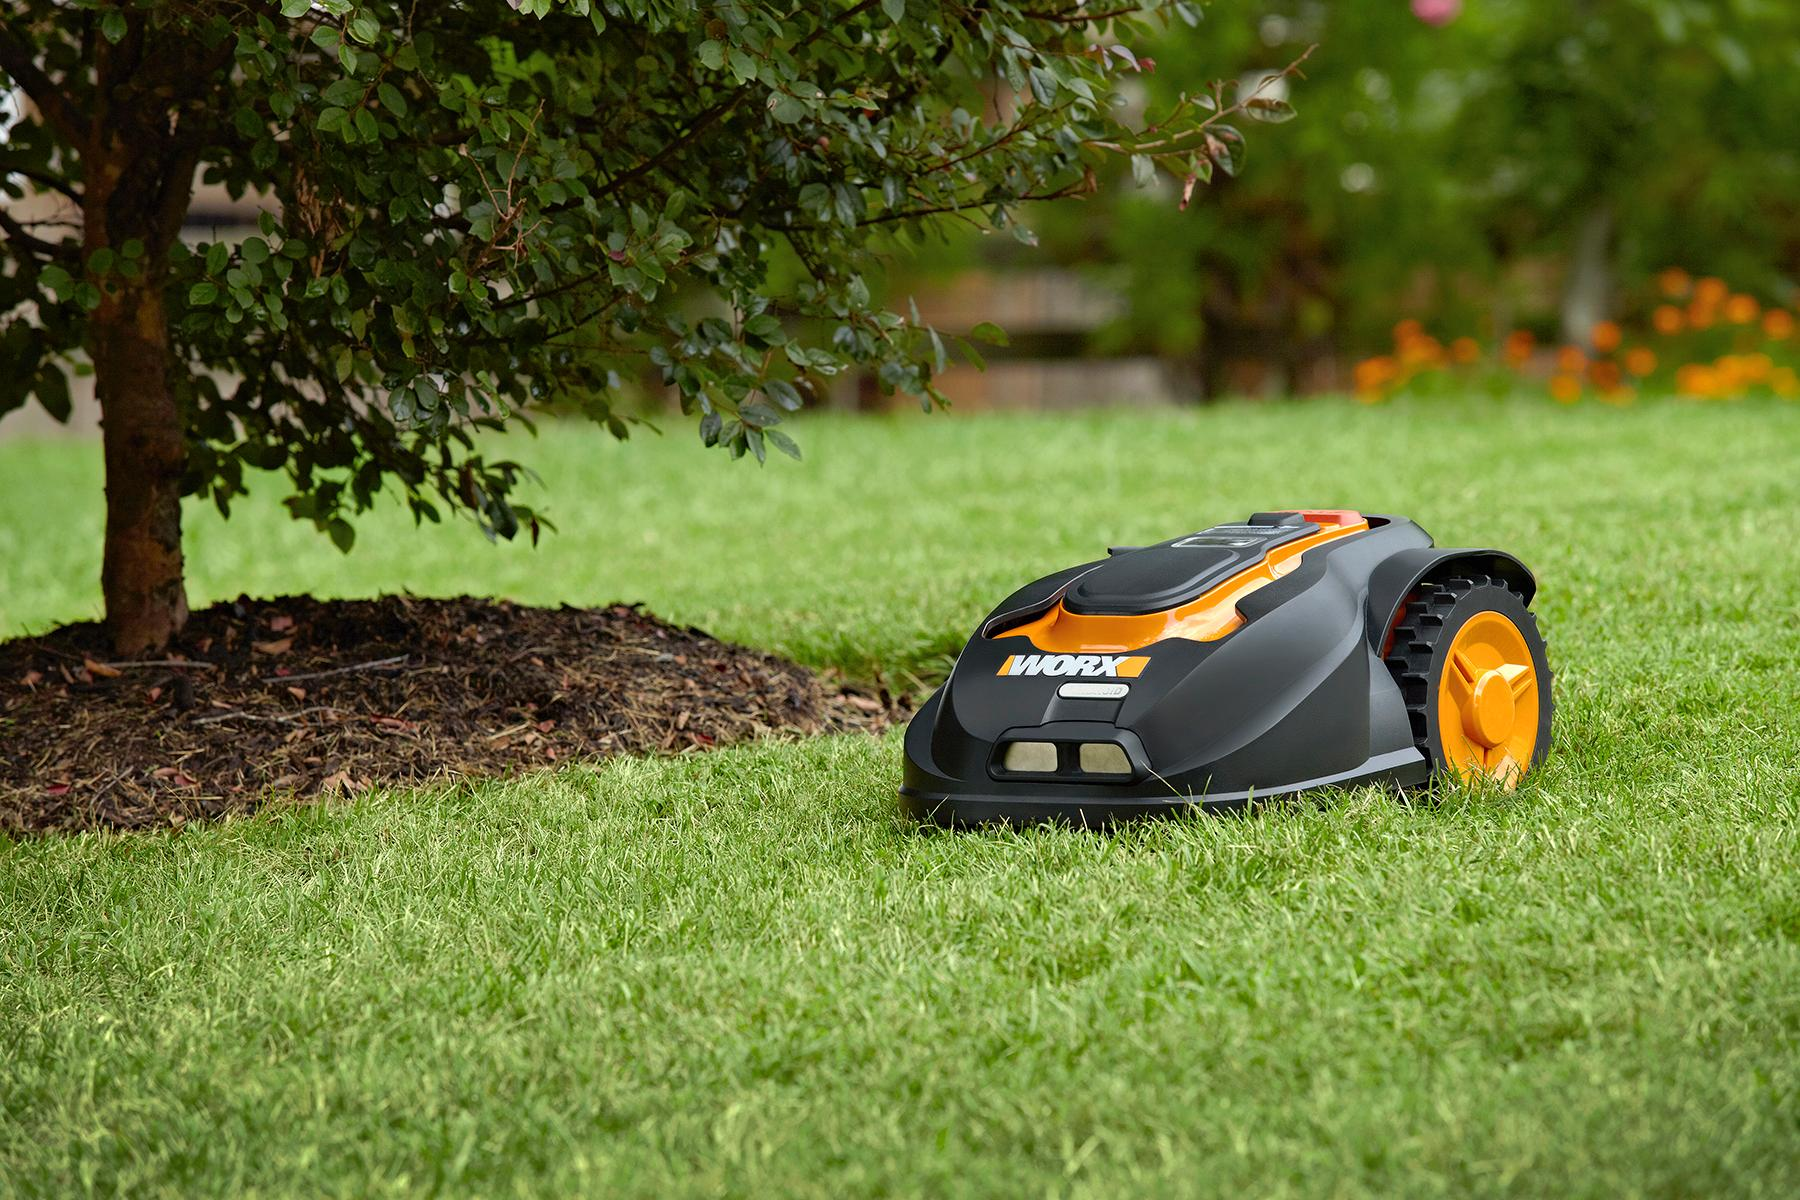 Worx landroid robotic lawn mower 28 volt for Lawn mower cutting grass